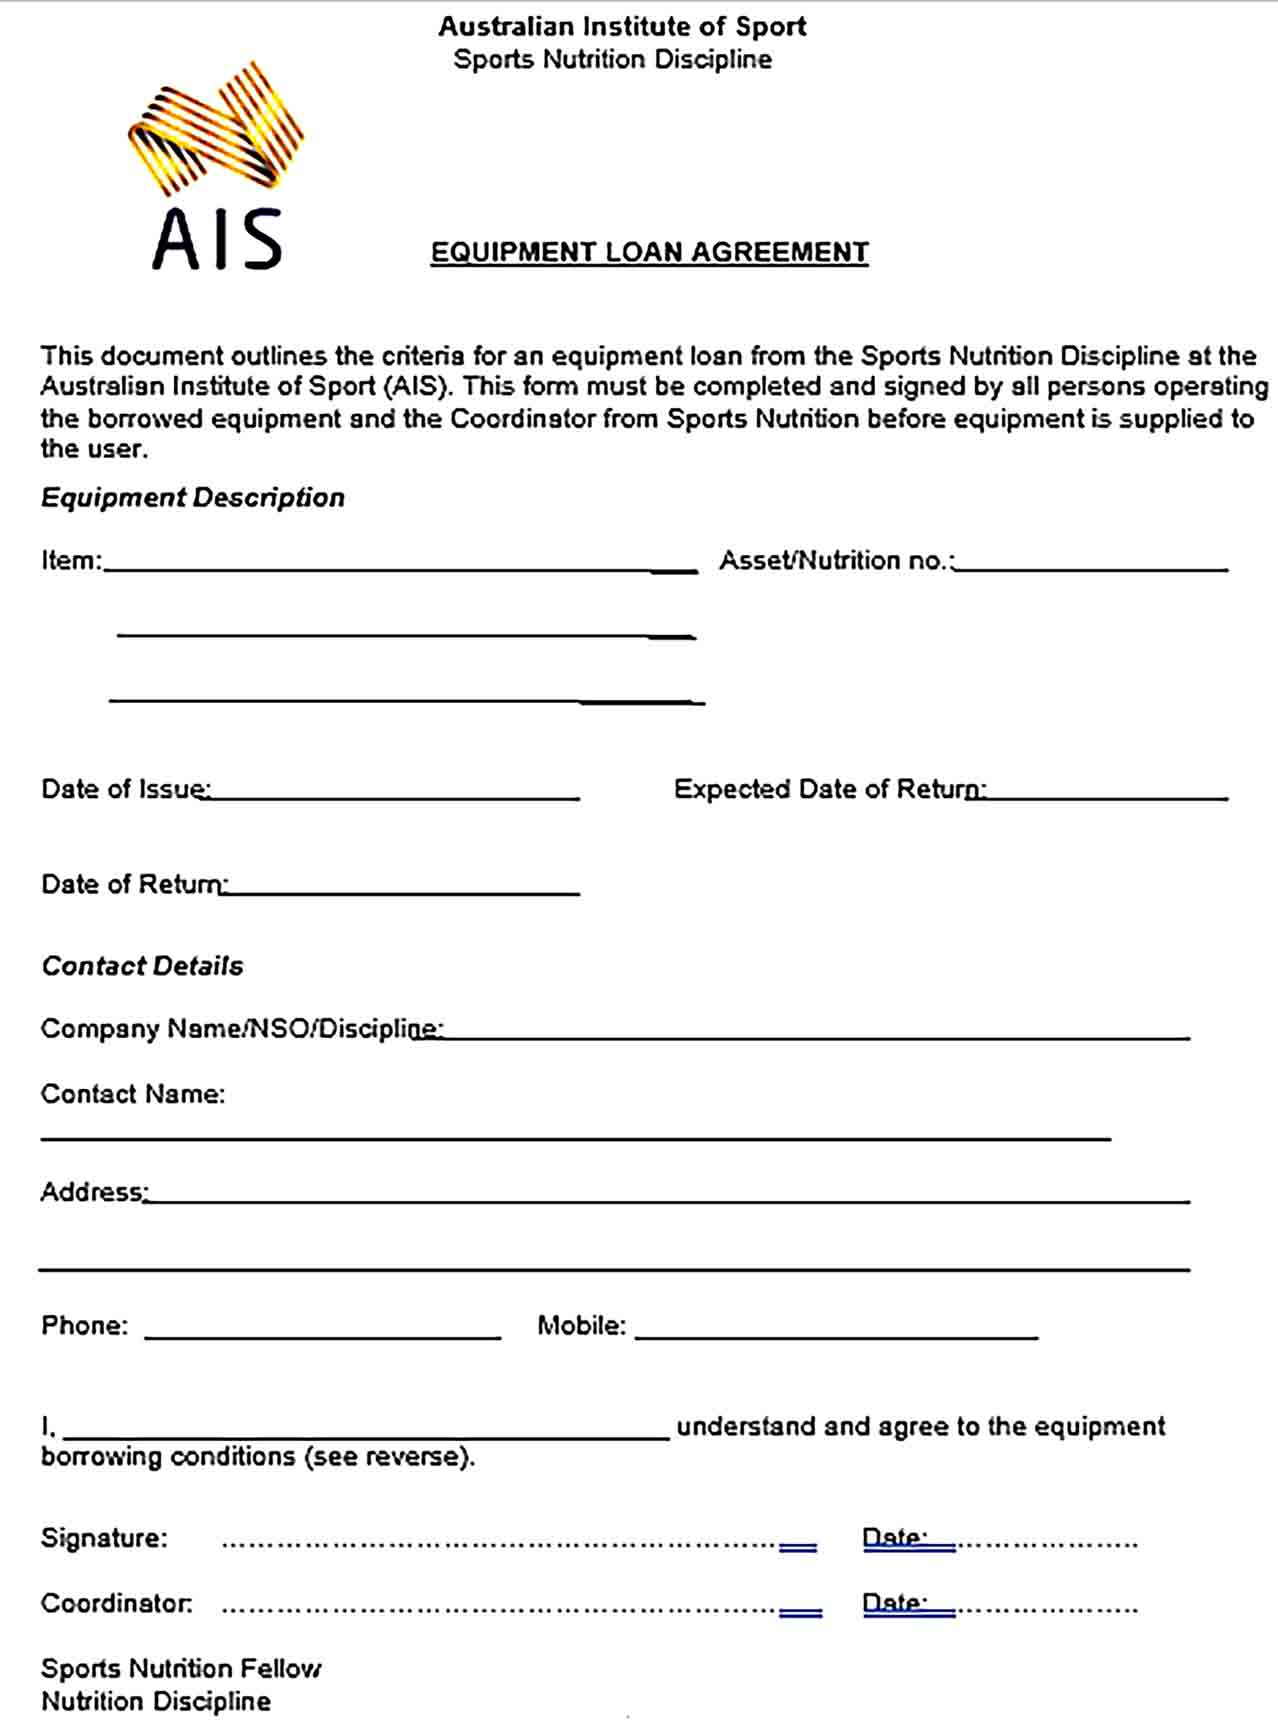 Sample Sports Nutrition Equipment Loan Agreement